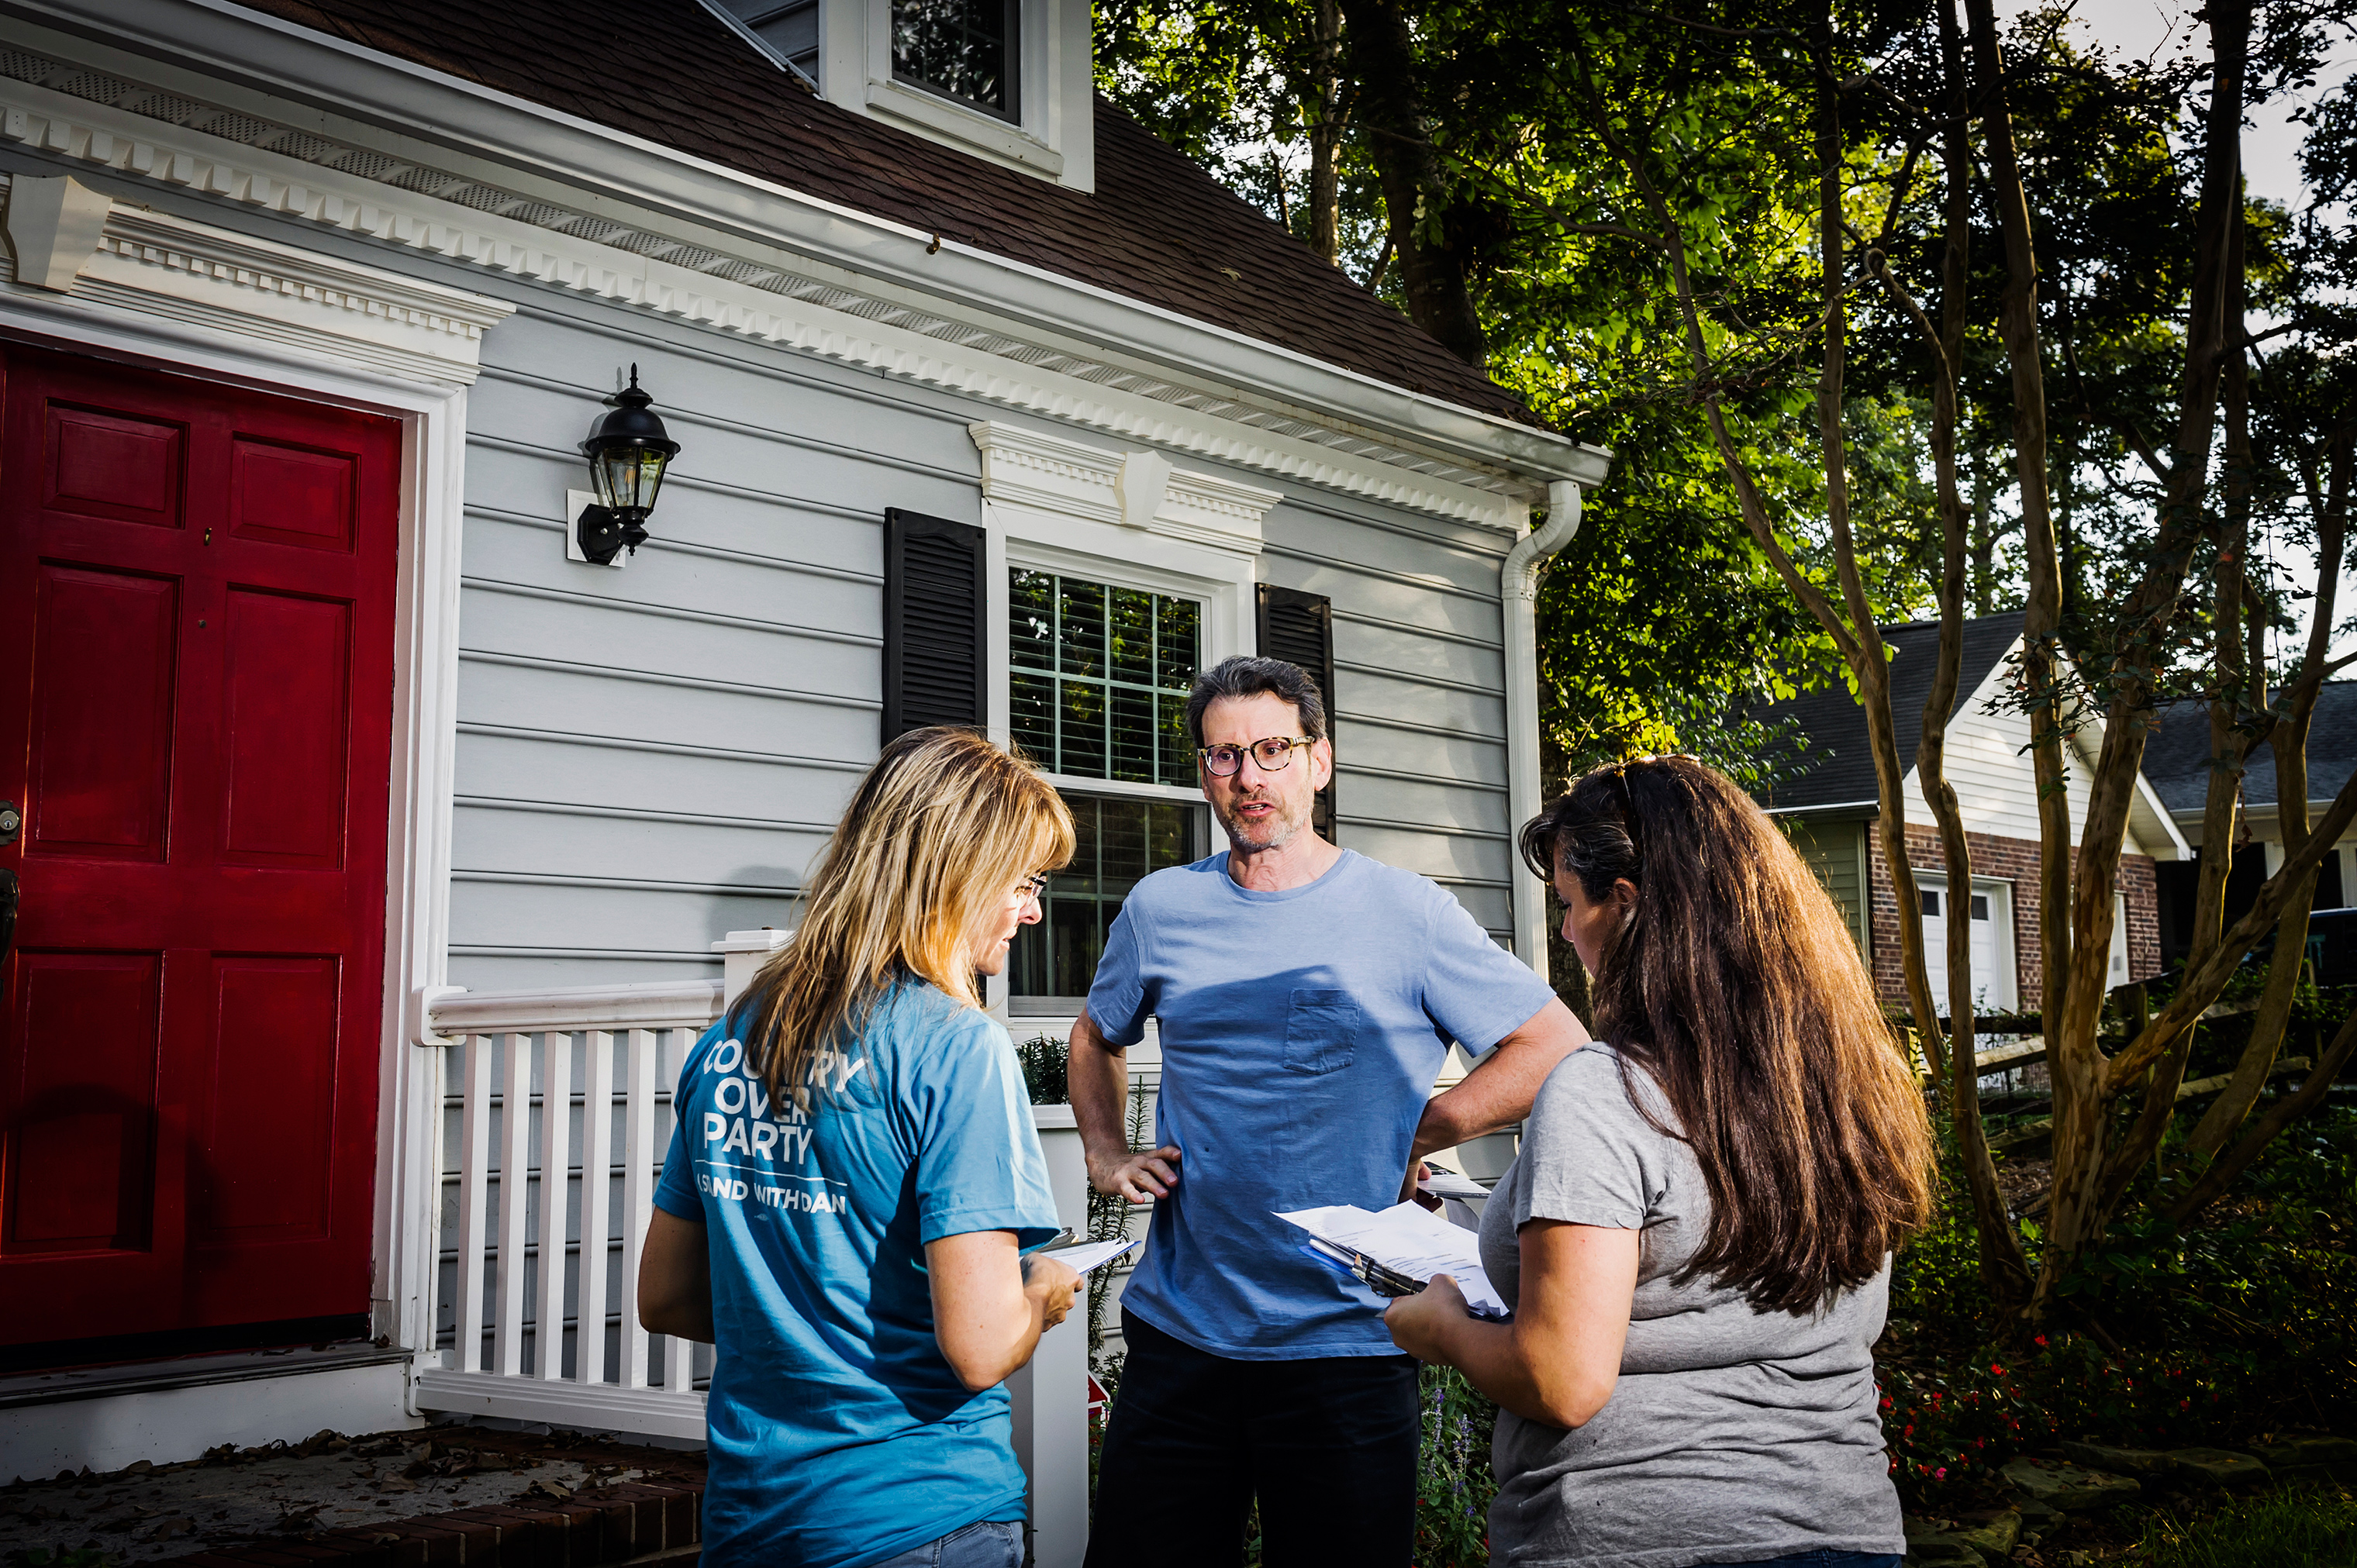 Eberly and her group's co-founder, Ava Williamson, canvass for Democrat Dan McCready in North Carolina's 9th House district.